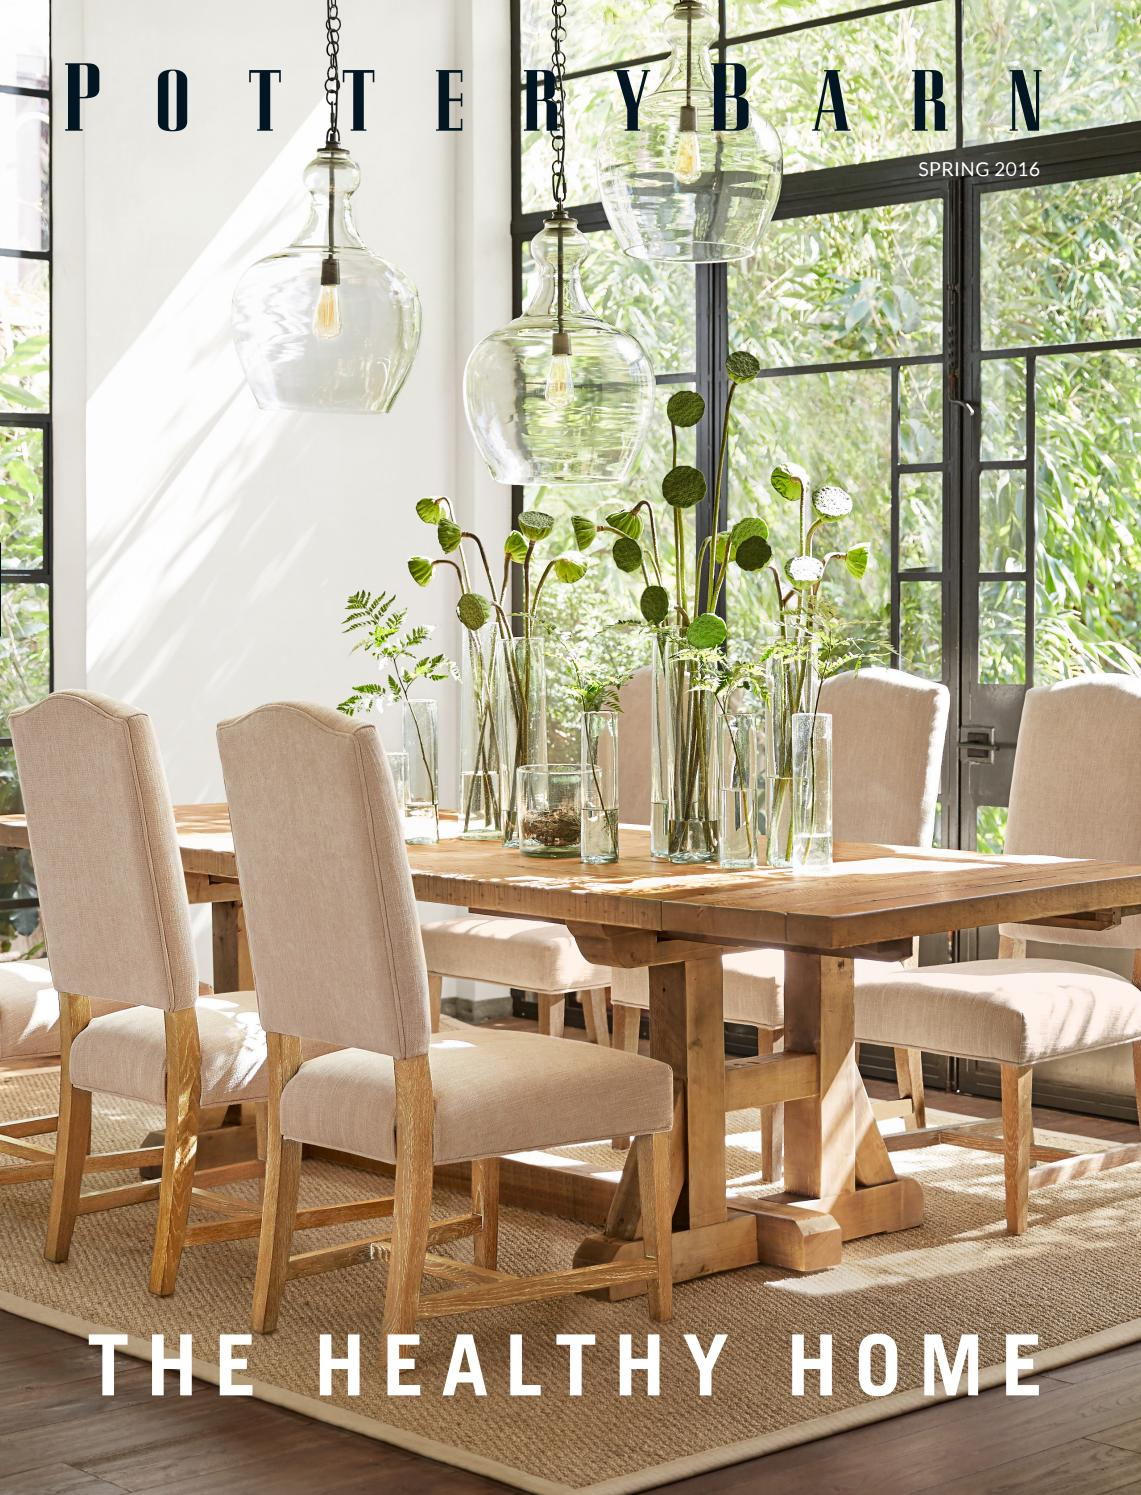 Pottery Barn Australia   Spring Catalogue 2016Williams Within Recent Alfresco Brown Banks Extending Dining Tables (View 20 of 25)